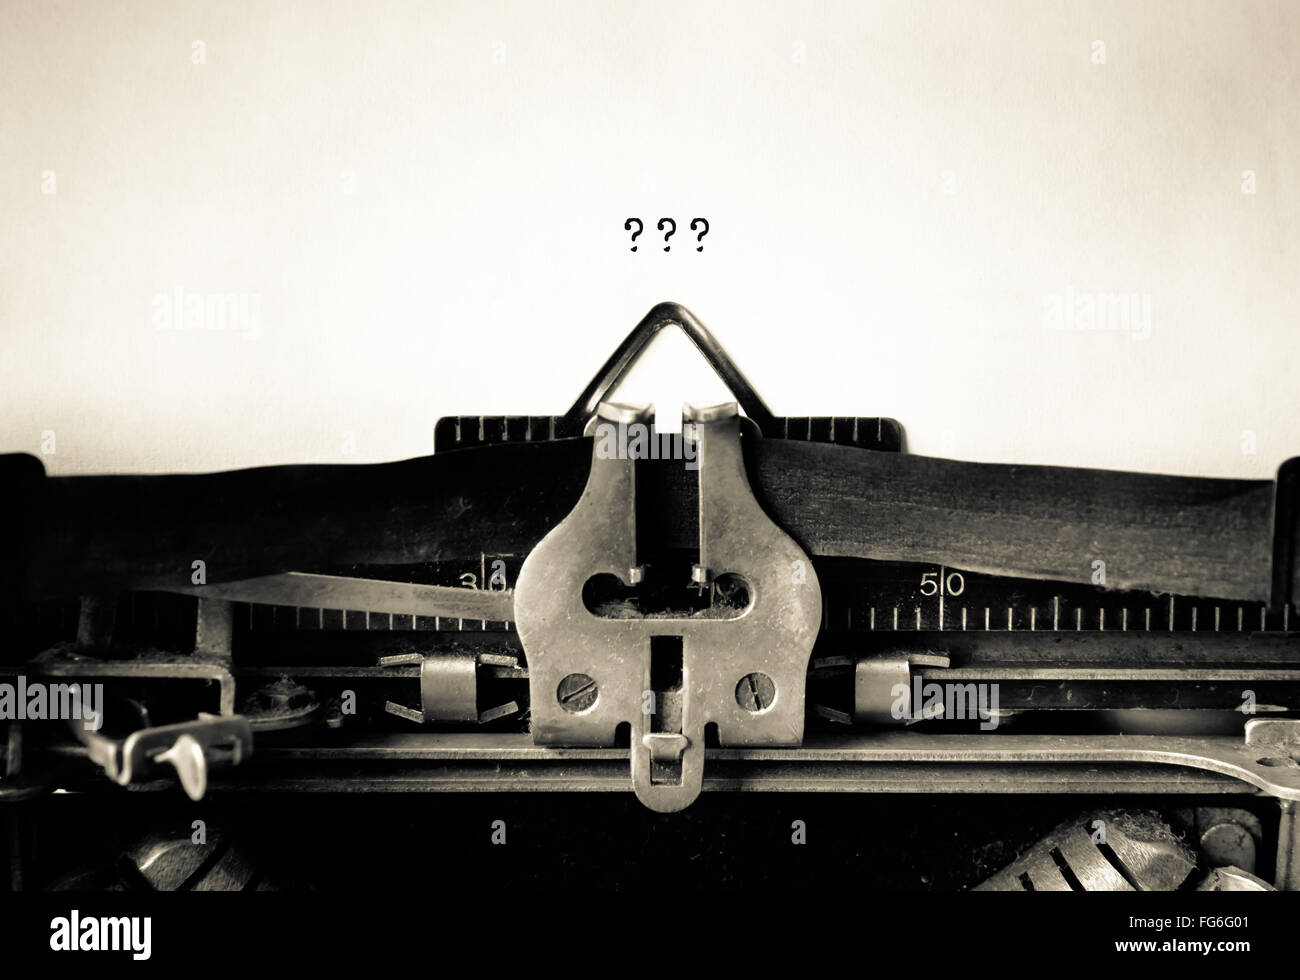 Writers Block typed words on a Vintage Typewriter - Stock Image